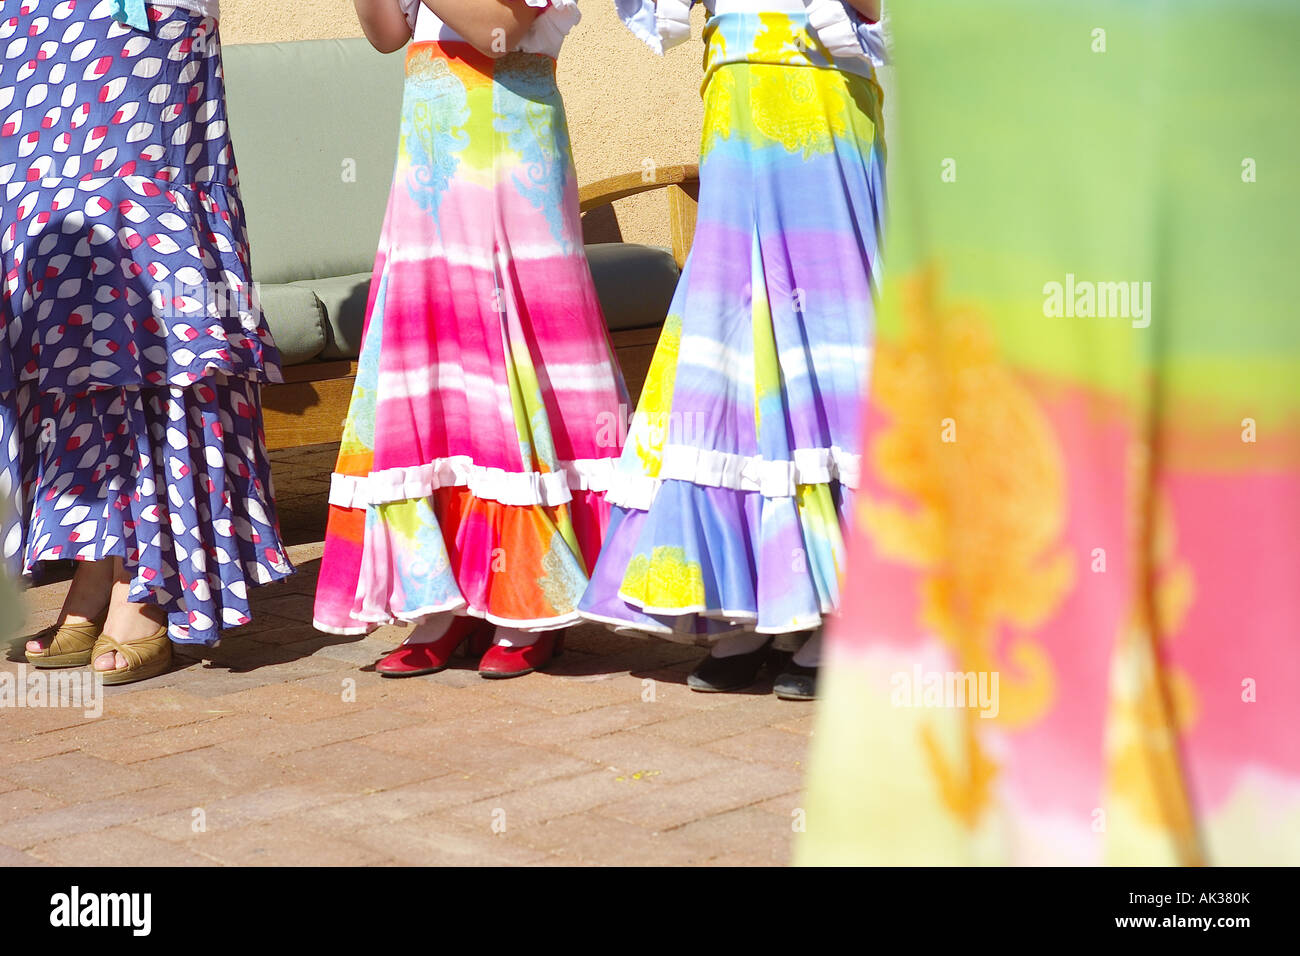 Flamenco Dancers outdoors in the summer. - Stock Image